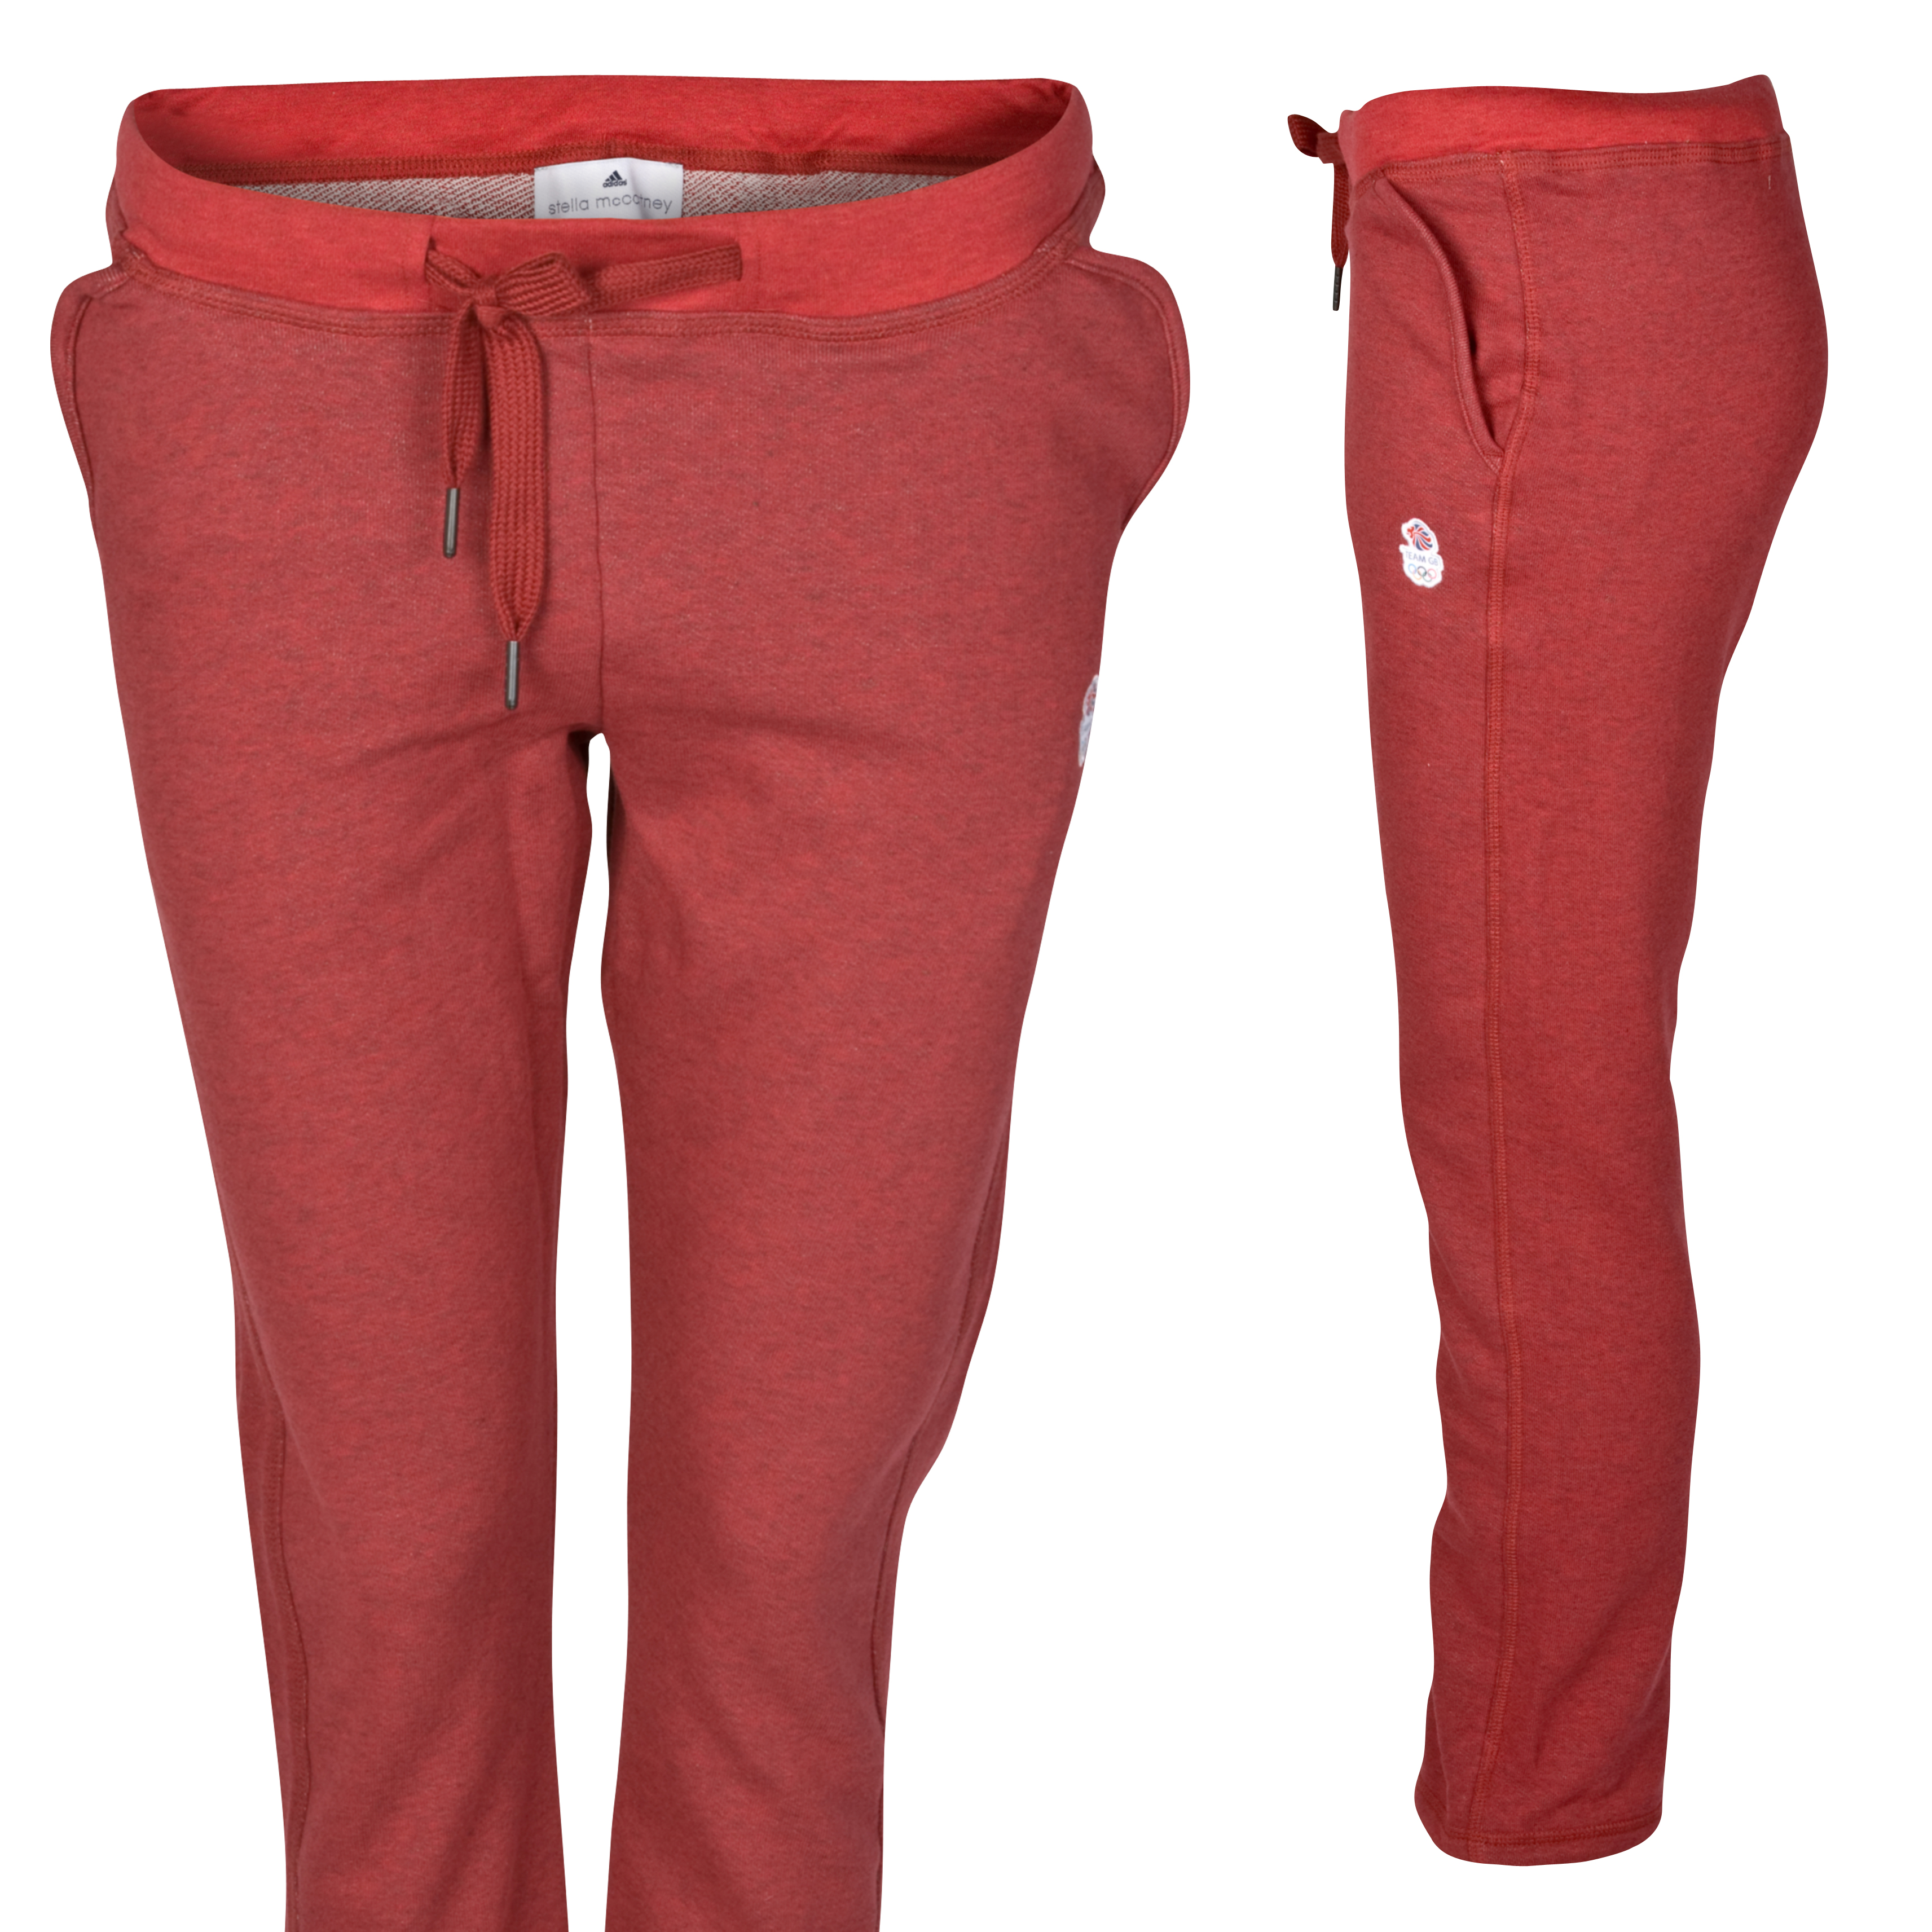 adidas Team GB Emblem Pant - Flame Red Melange/Fire Melange - Womens